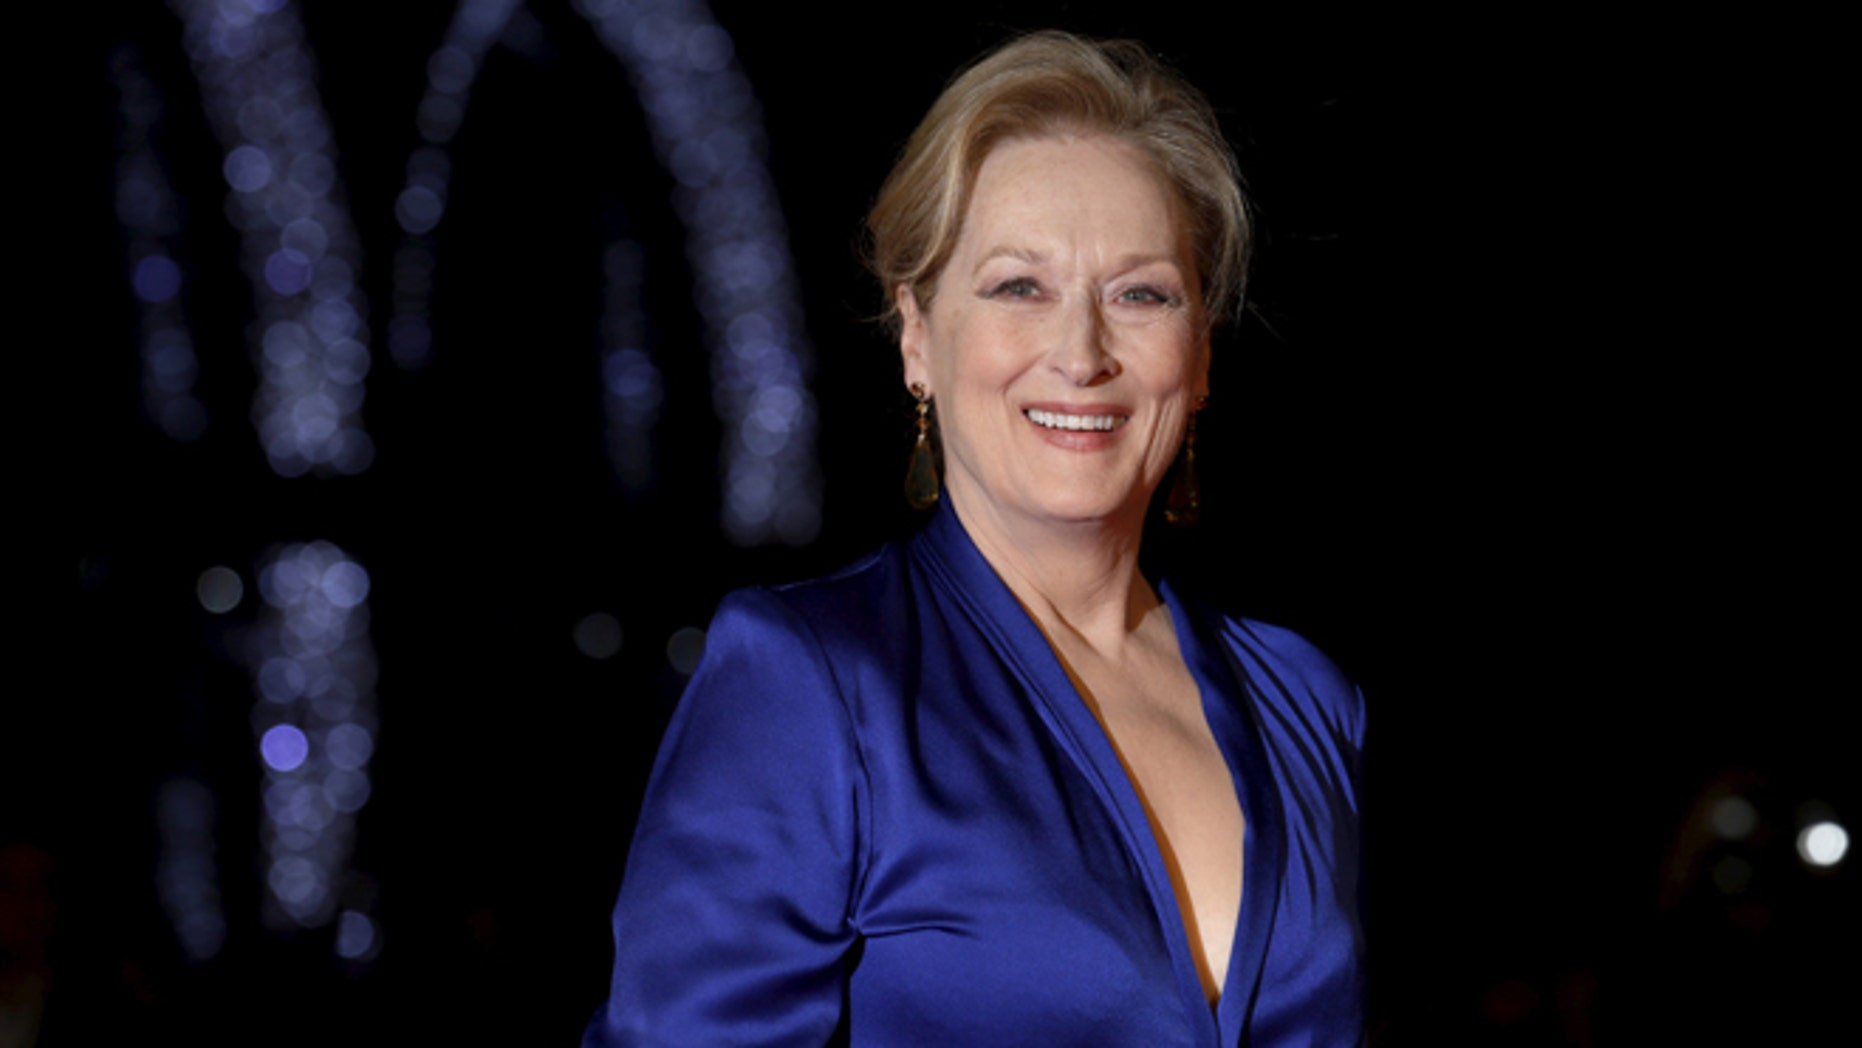 """October 7, 2015. Meryl Streep arrives for a screening of the film """"Suffragette"""" in London."""